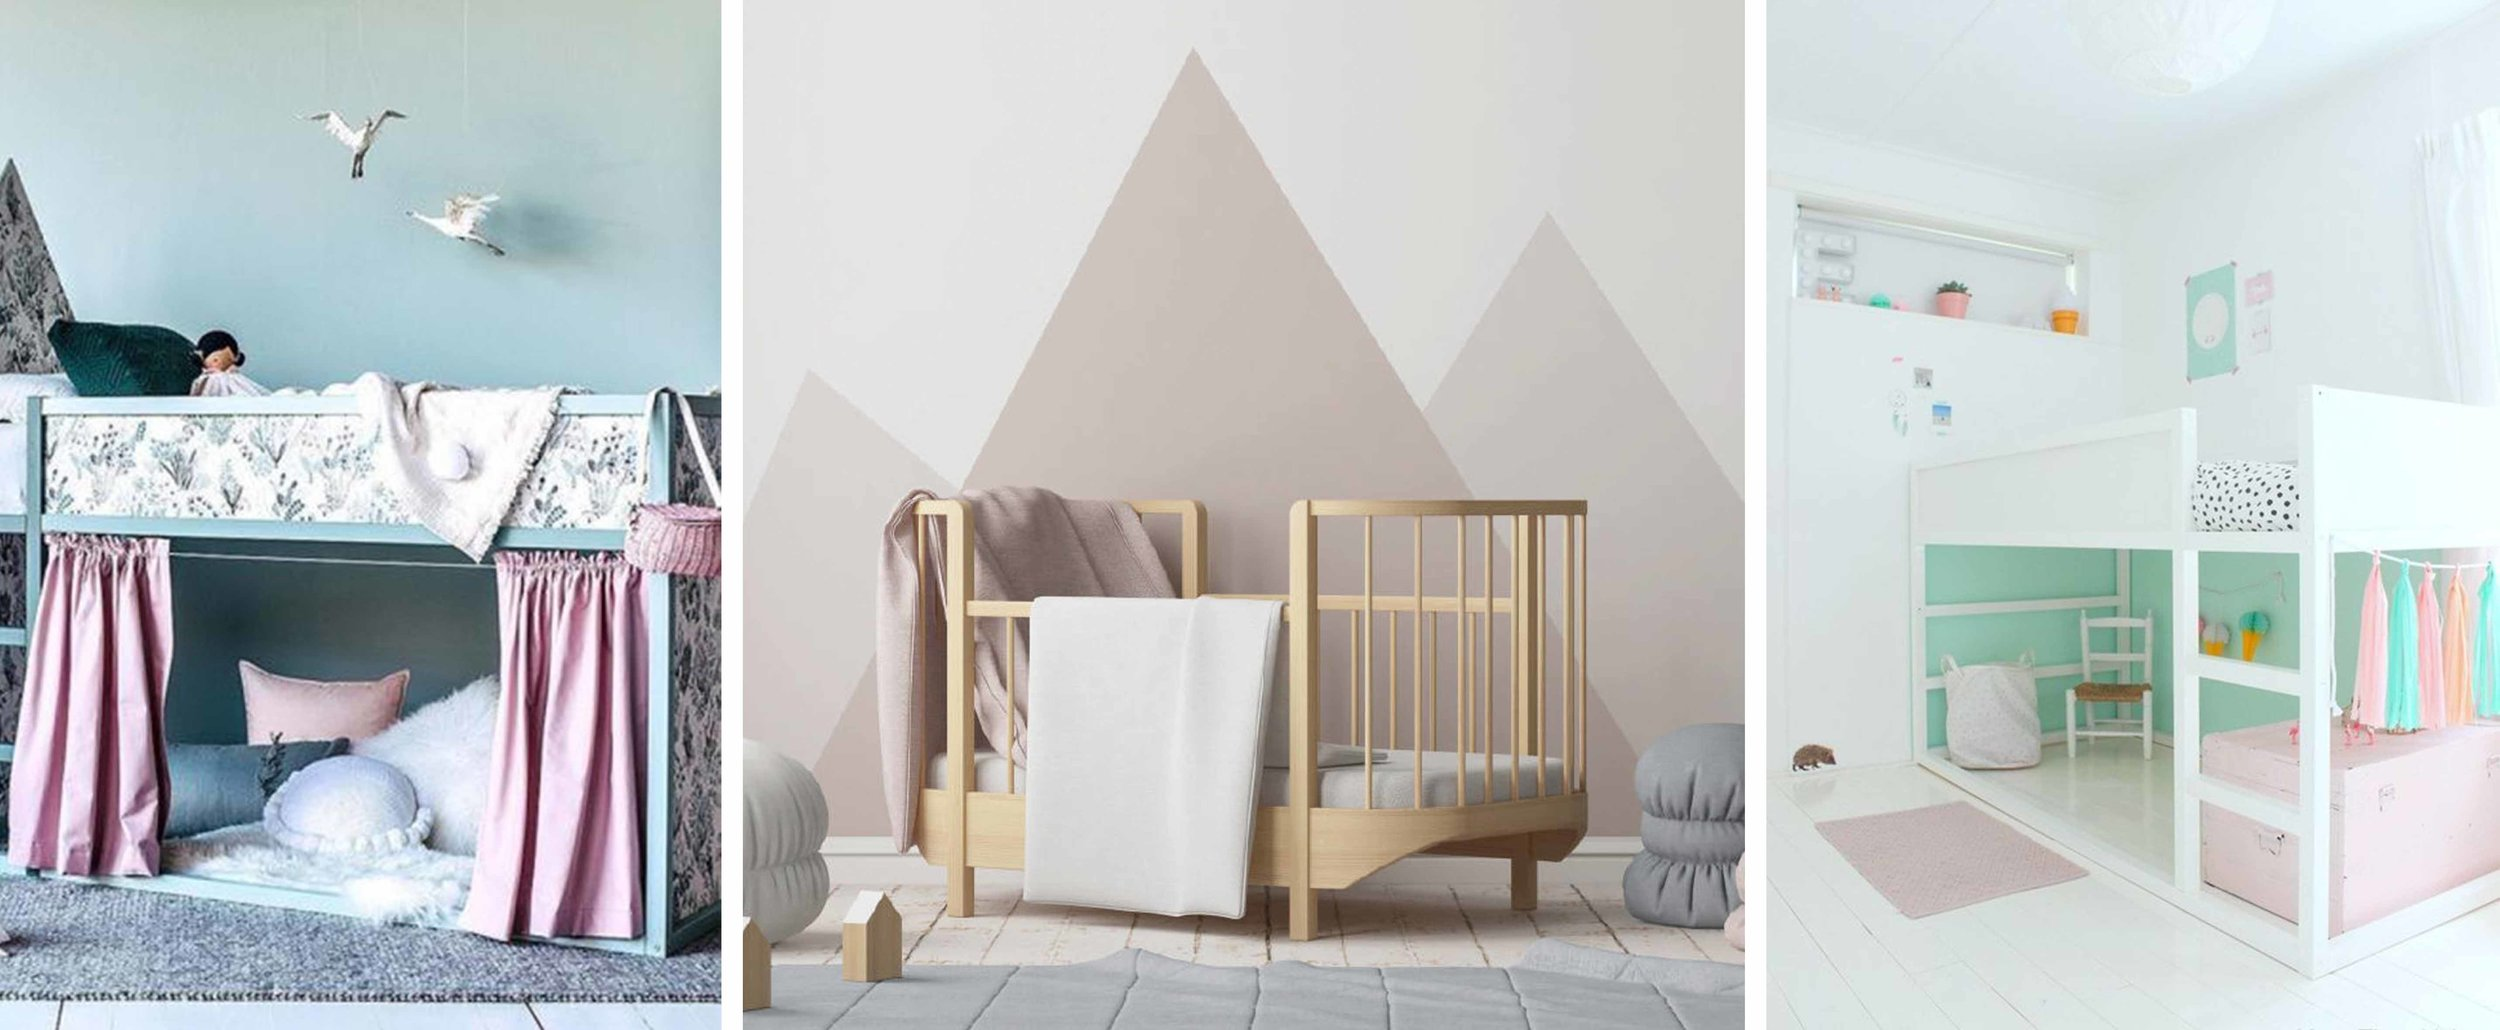 pokestudio_beforeandafter_interior_design_babyroom